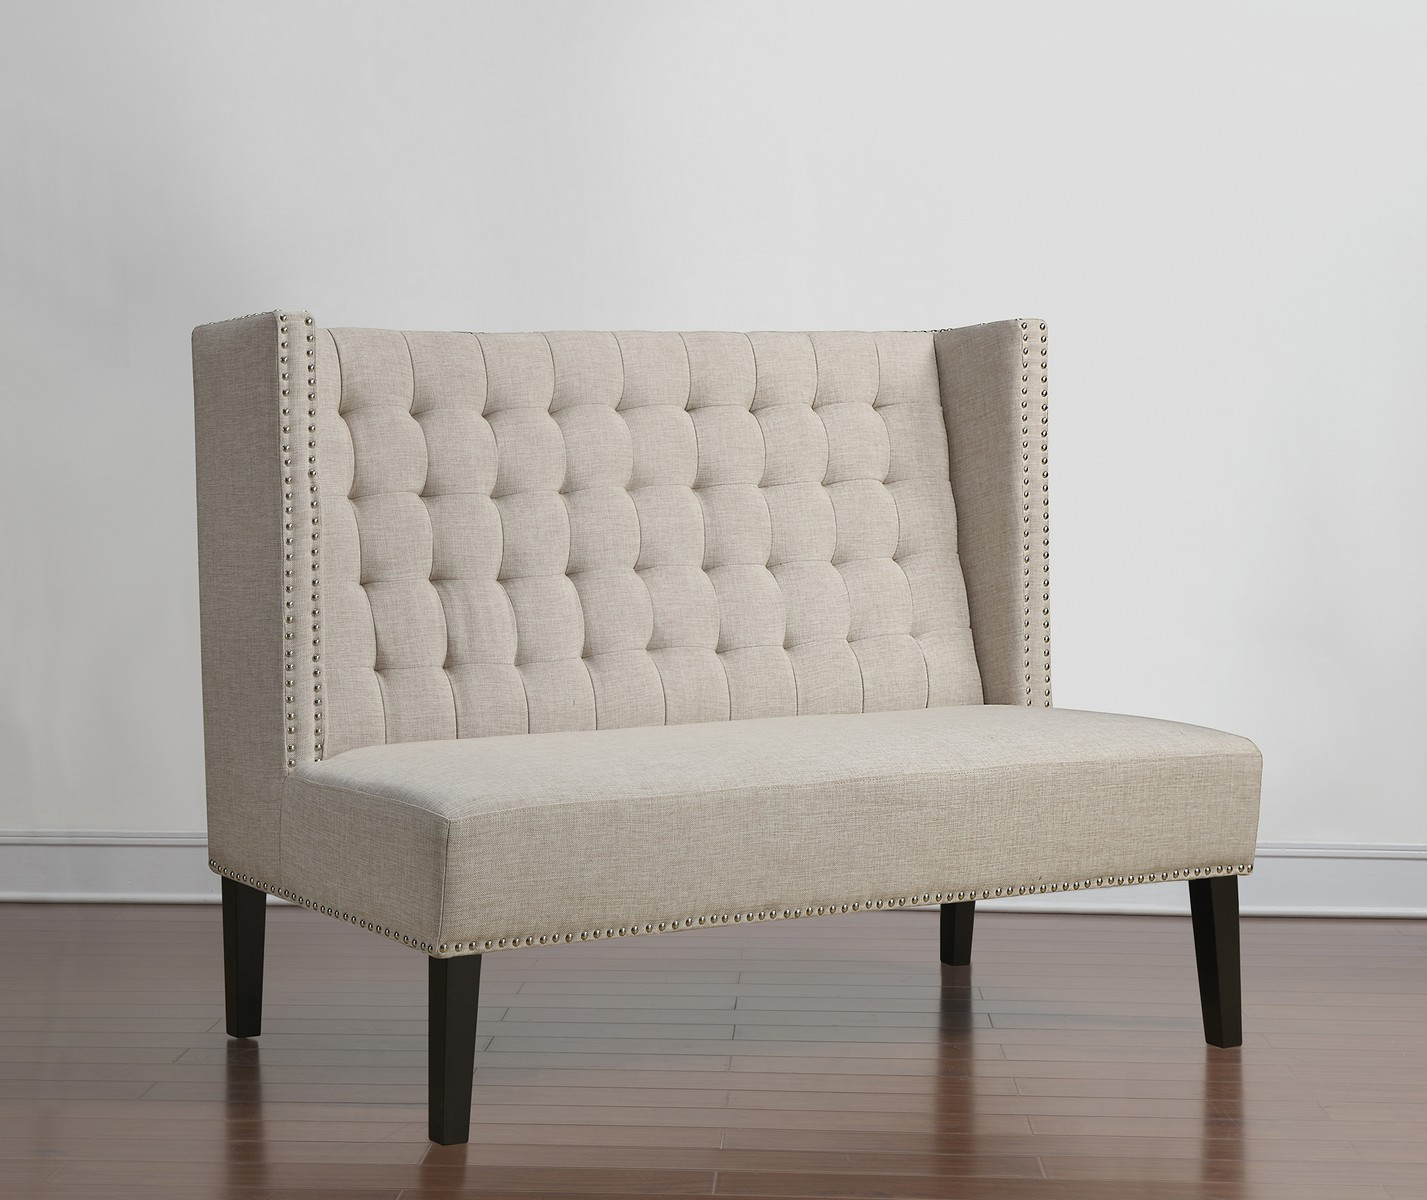 Tov furniture halifax beige linen banquette bench 63114 Banquette bench